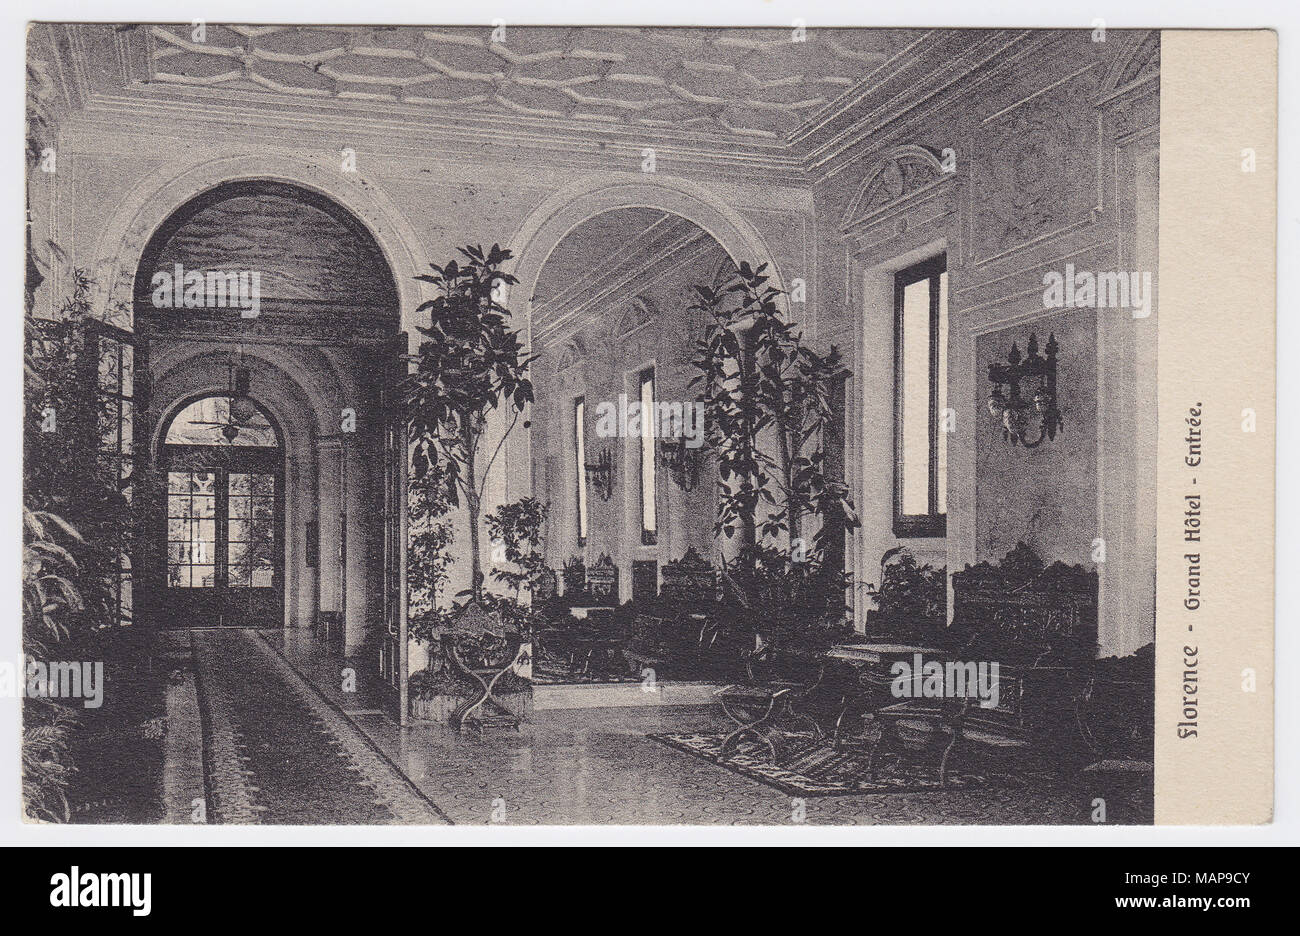 Grand Hotel, Florence, Italy, Entrance / Hall - Stock Image